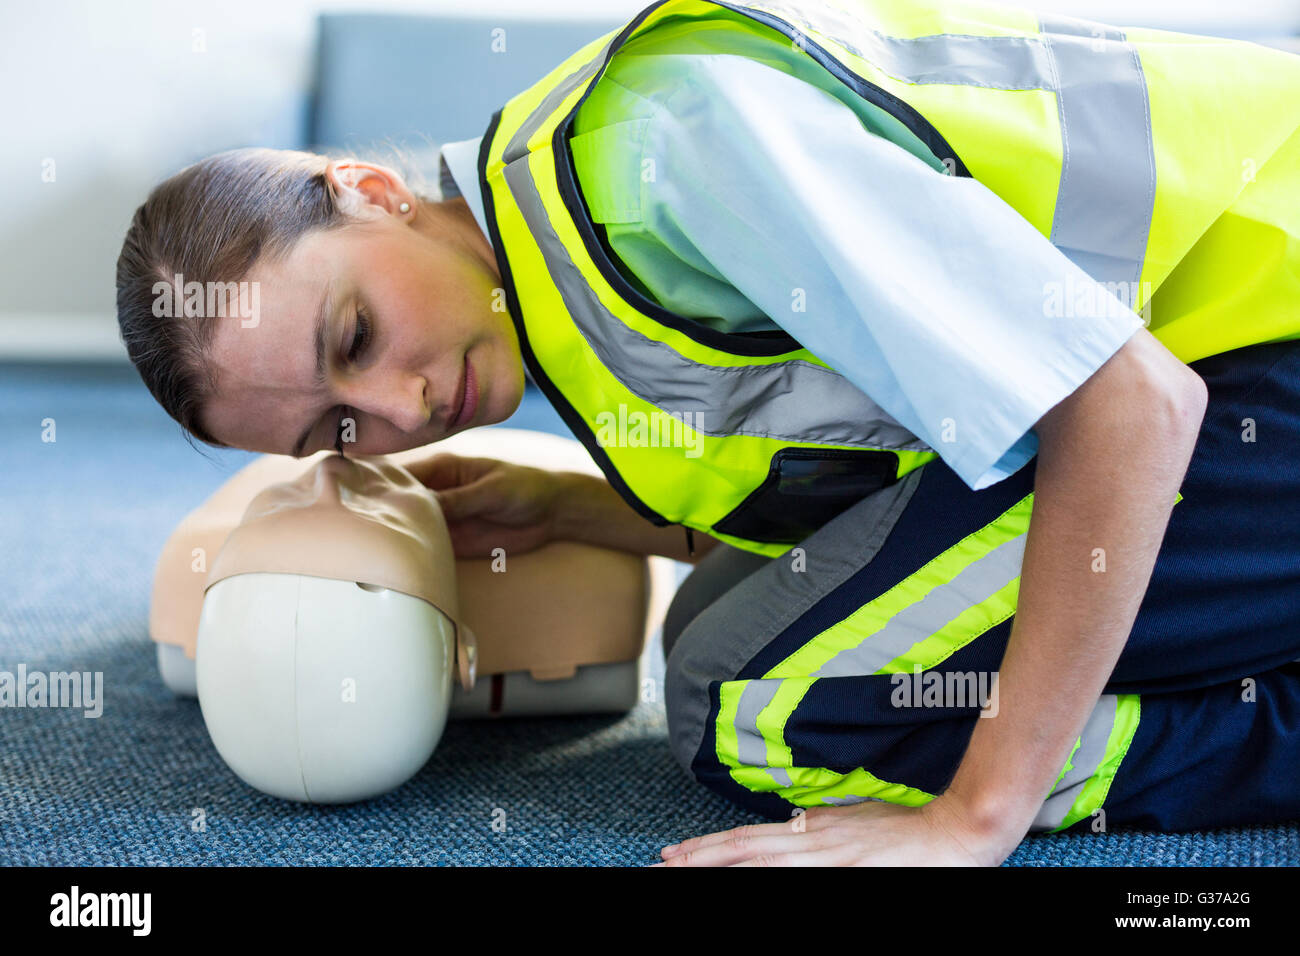 Female paramedic during cardiopulmonary resuscitation training - Stock Image